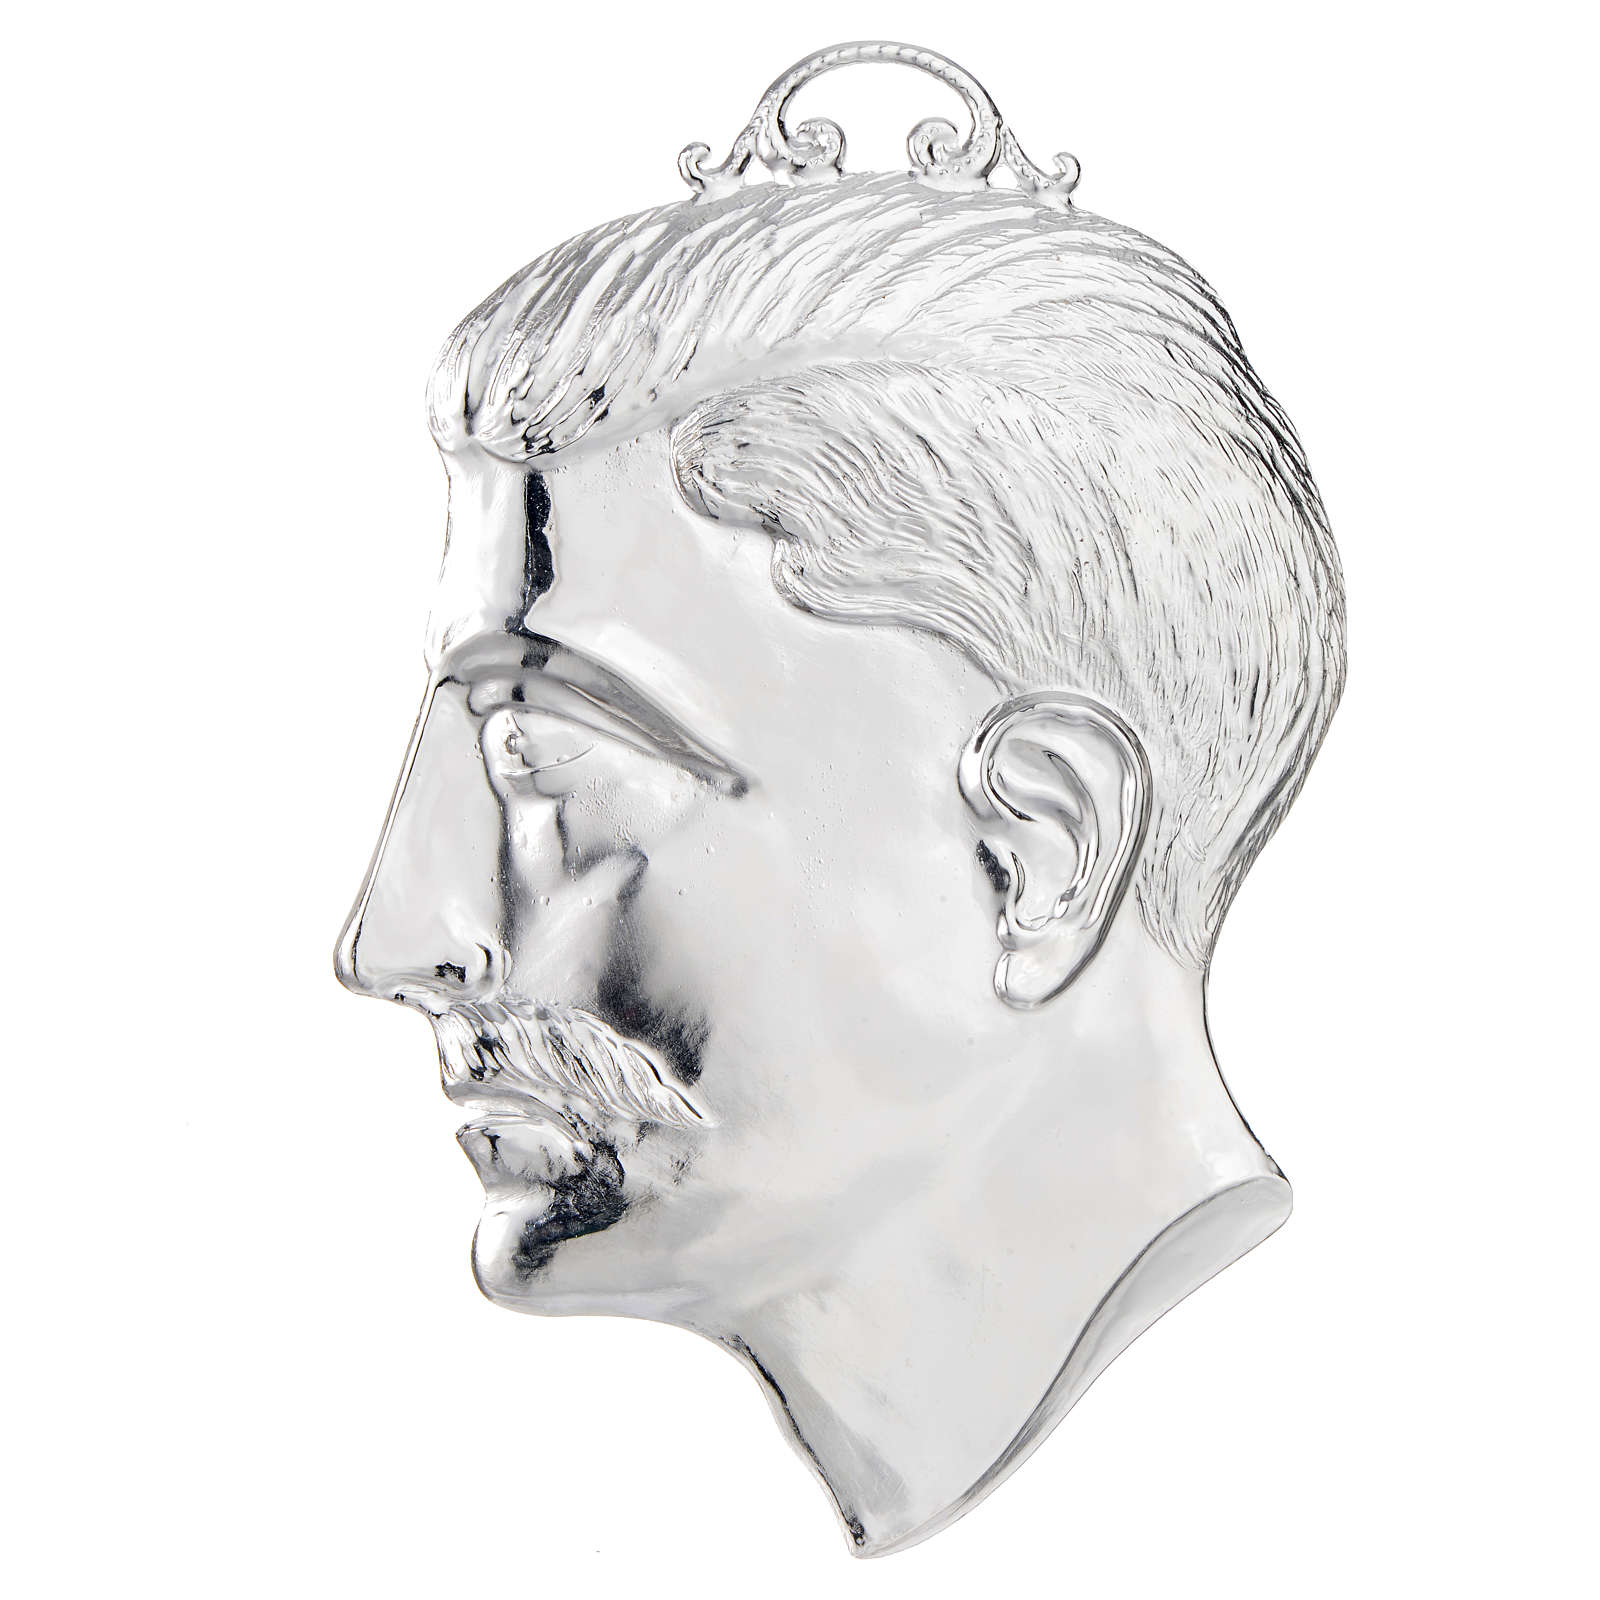 Ex-voto, male head in sterling silver or metal 15cm 3